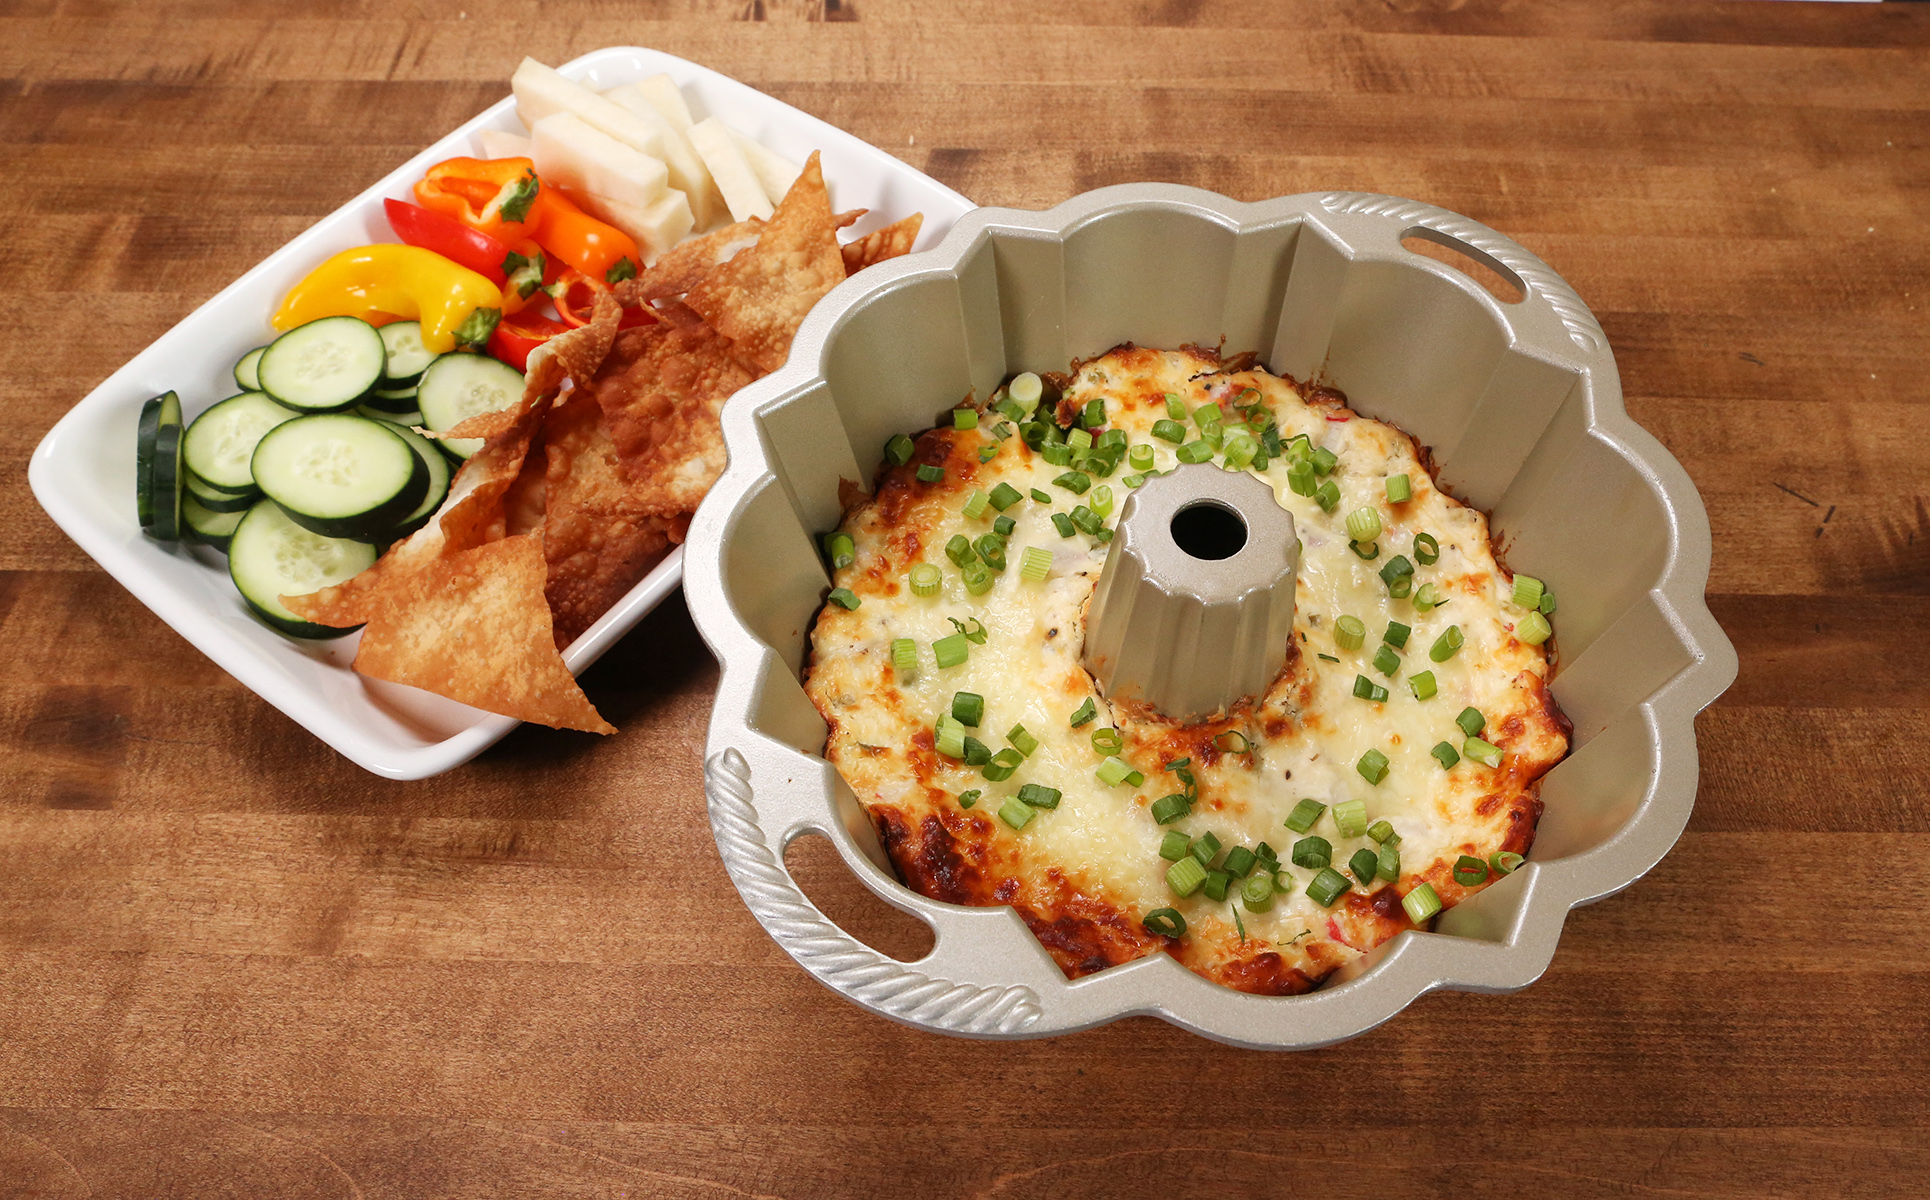 baked dish in fluted tube pan next to plate of chips and veggies